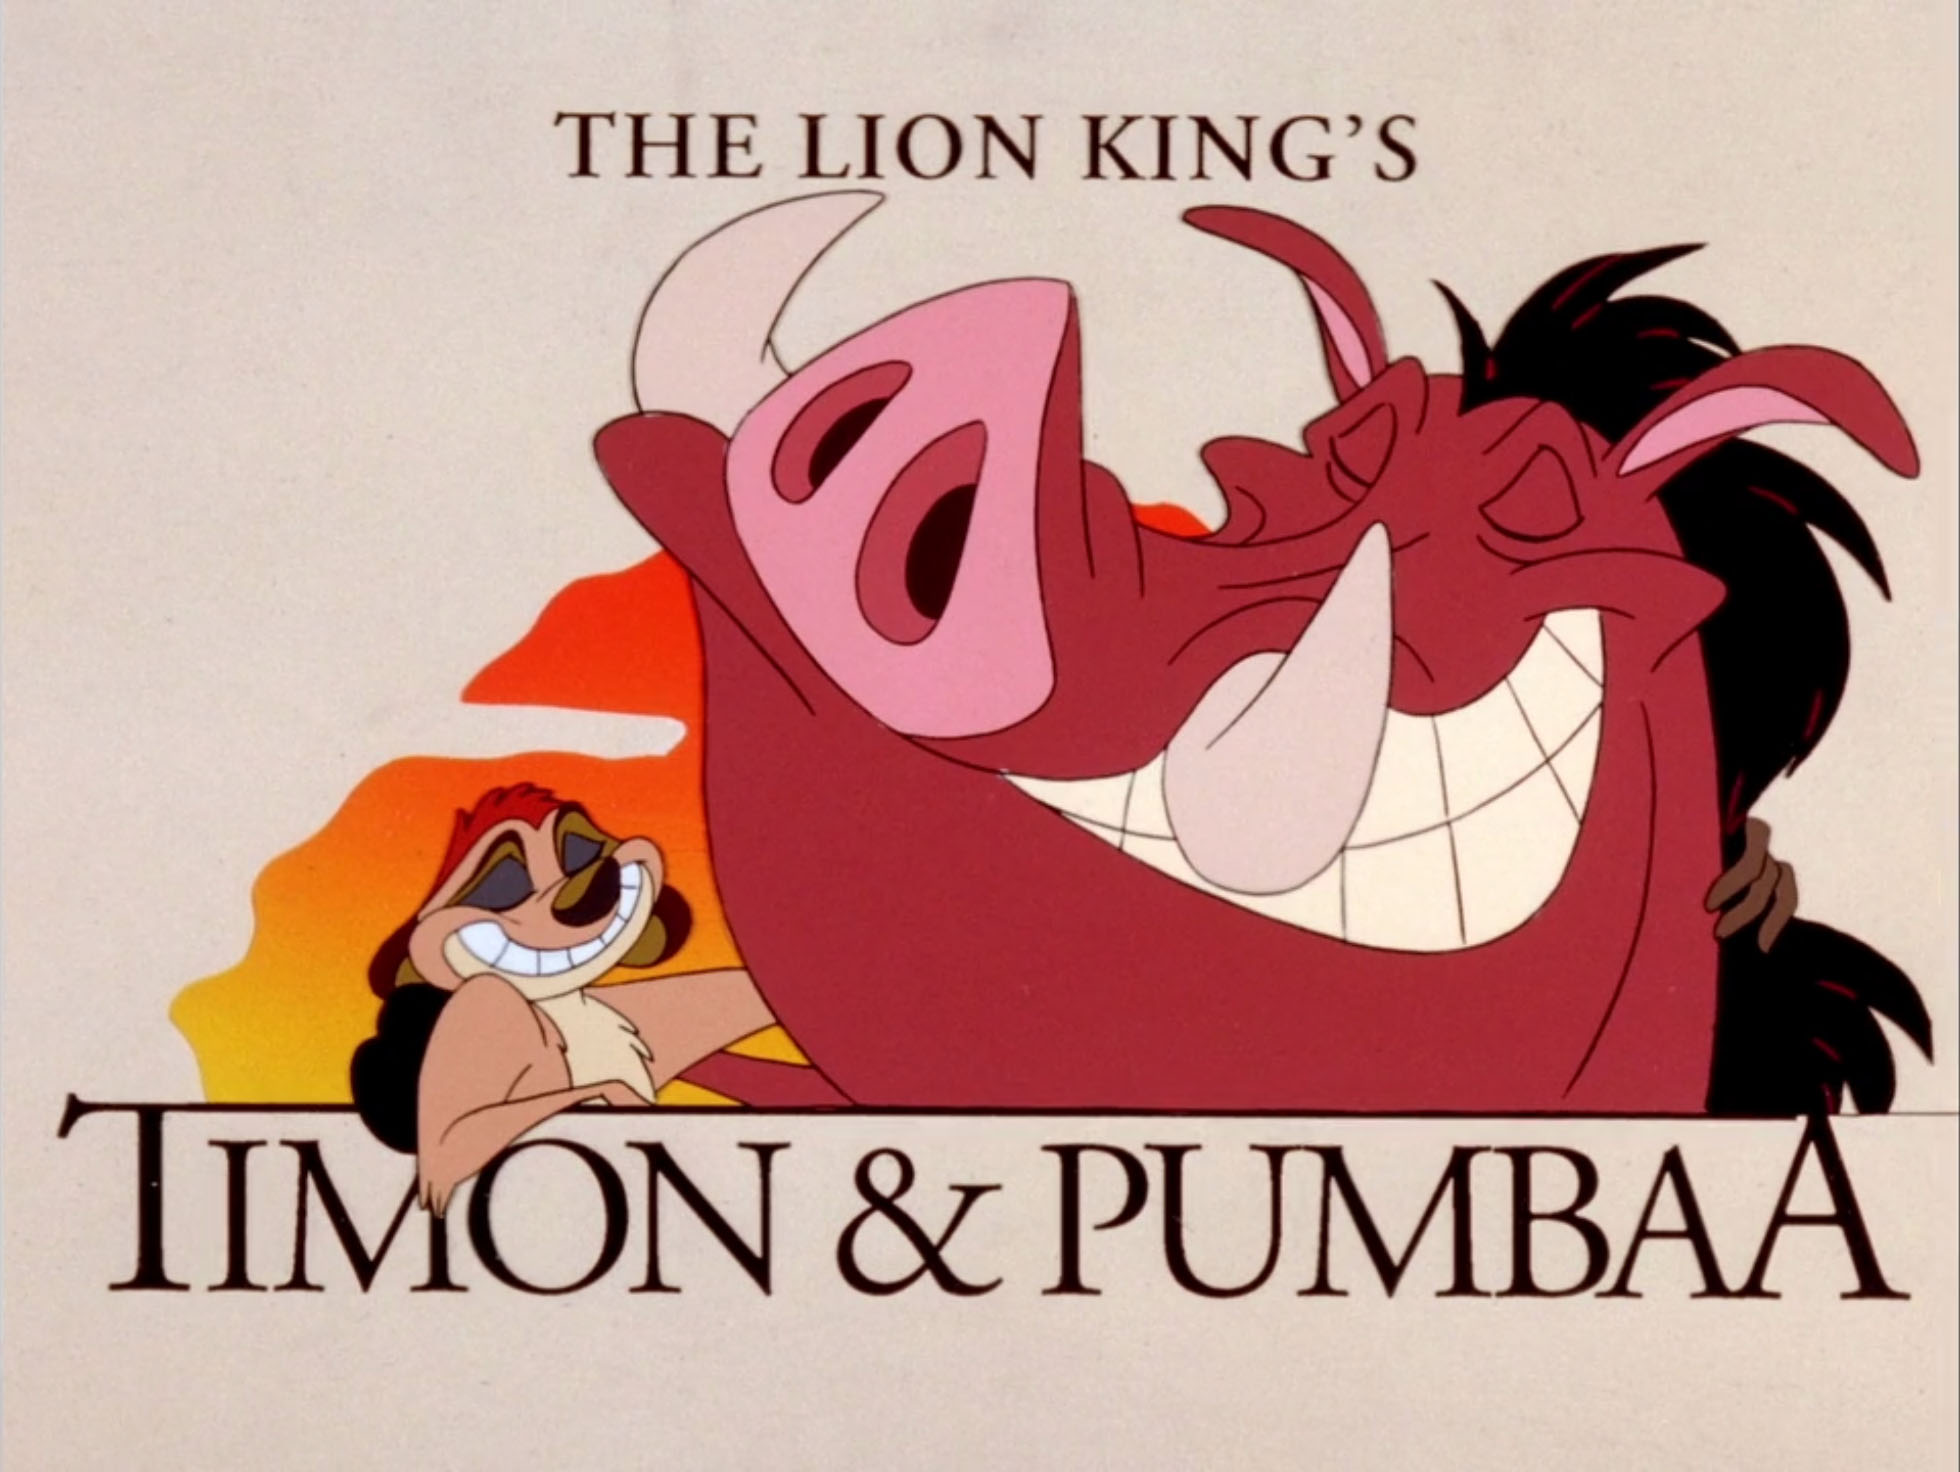 File:Timon and pumbaa-show.jpg